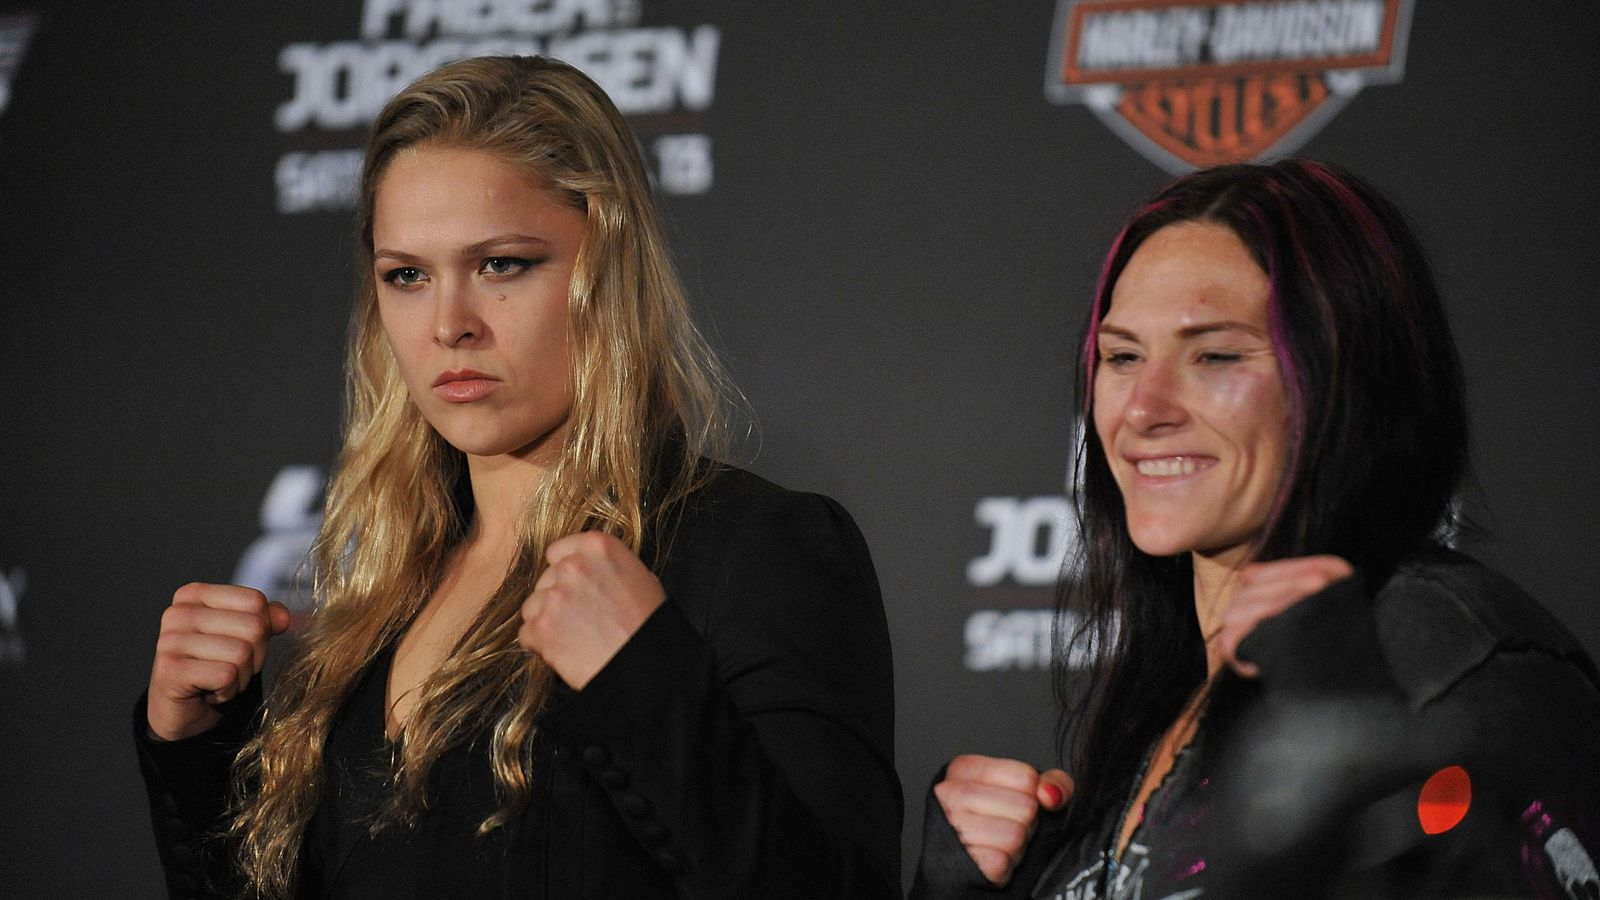 Rumored cast for 'TUF 18: Rousey vs Zingano'